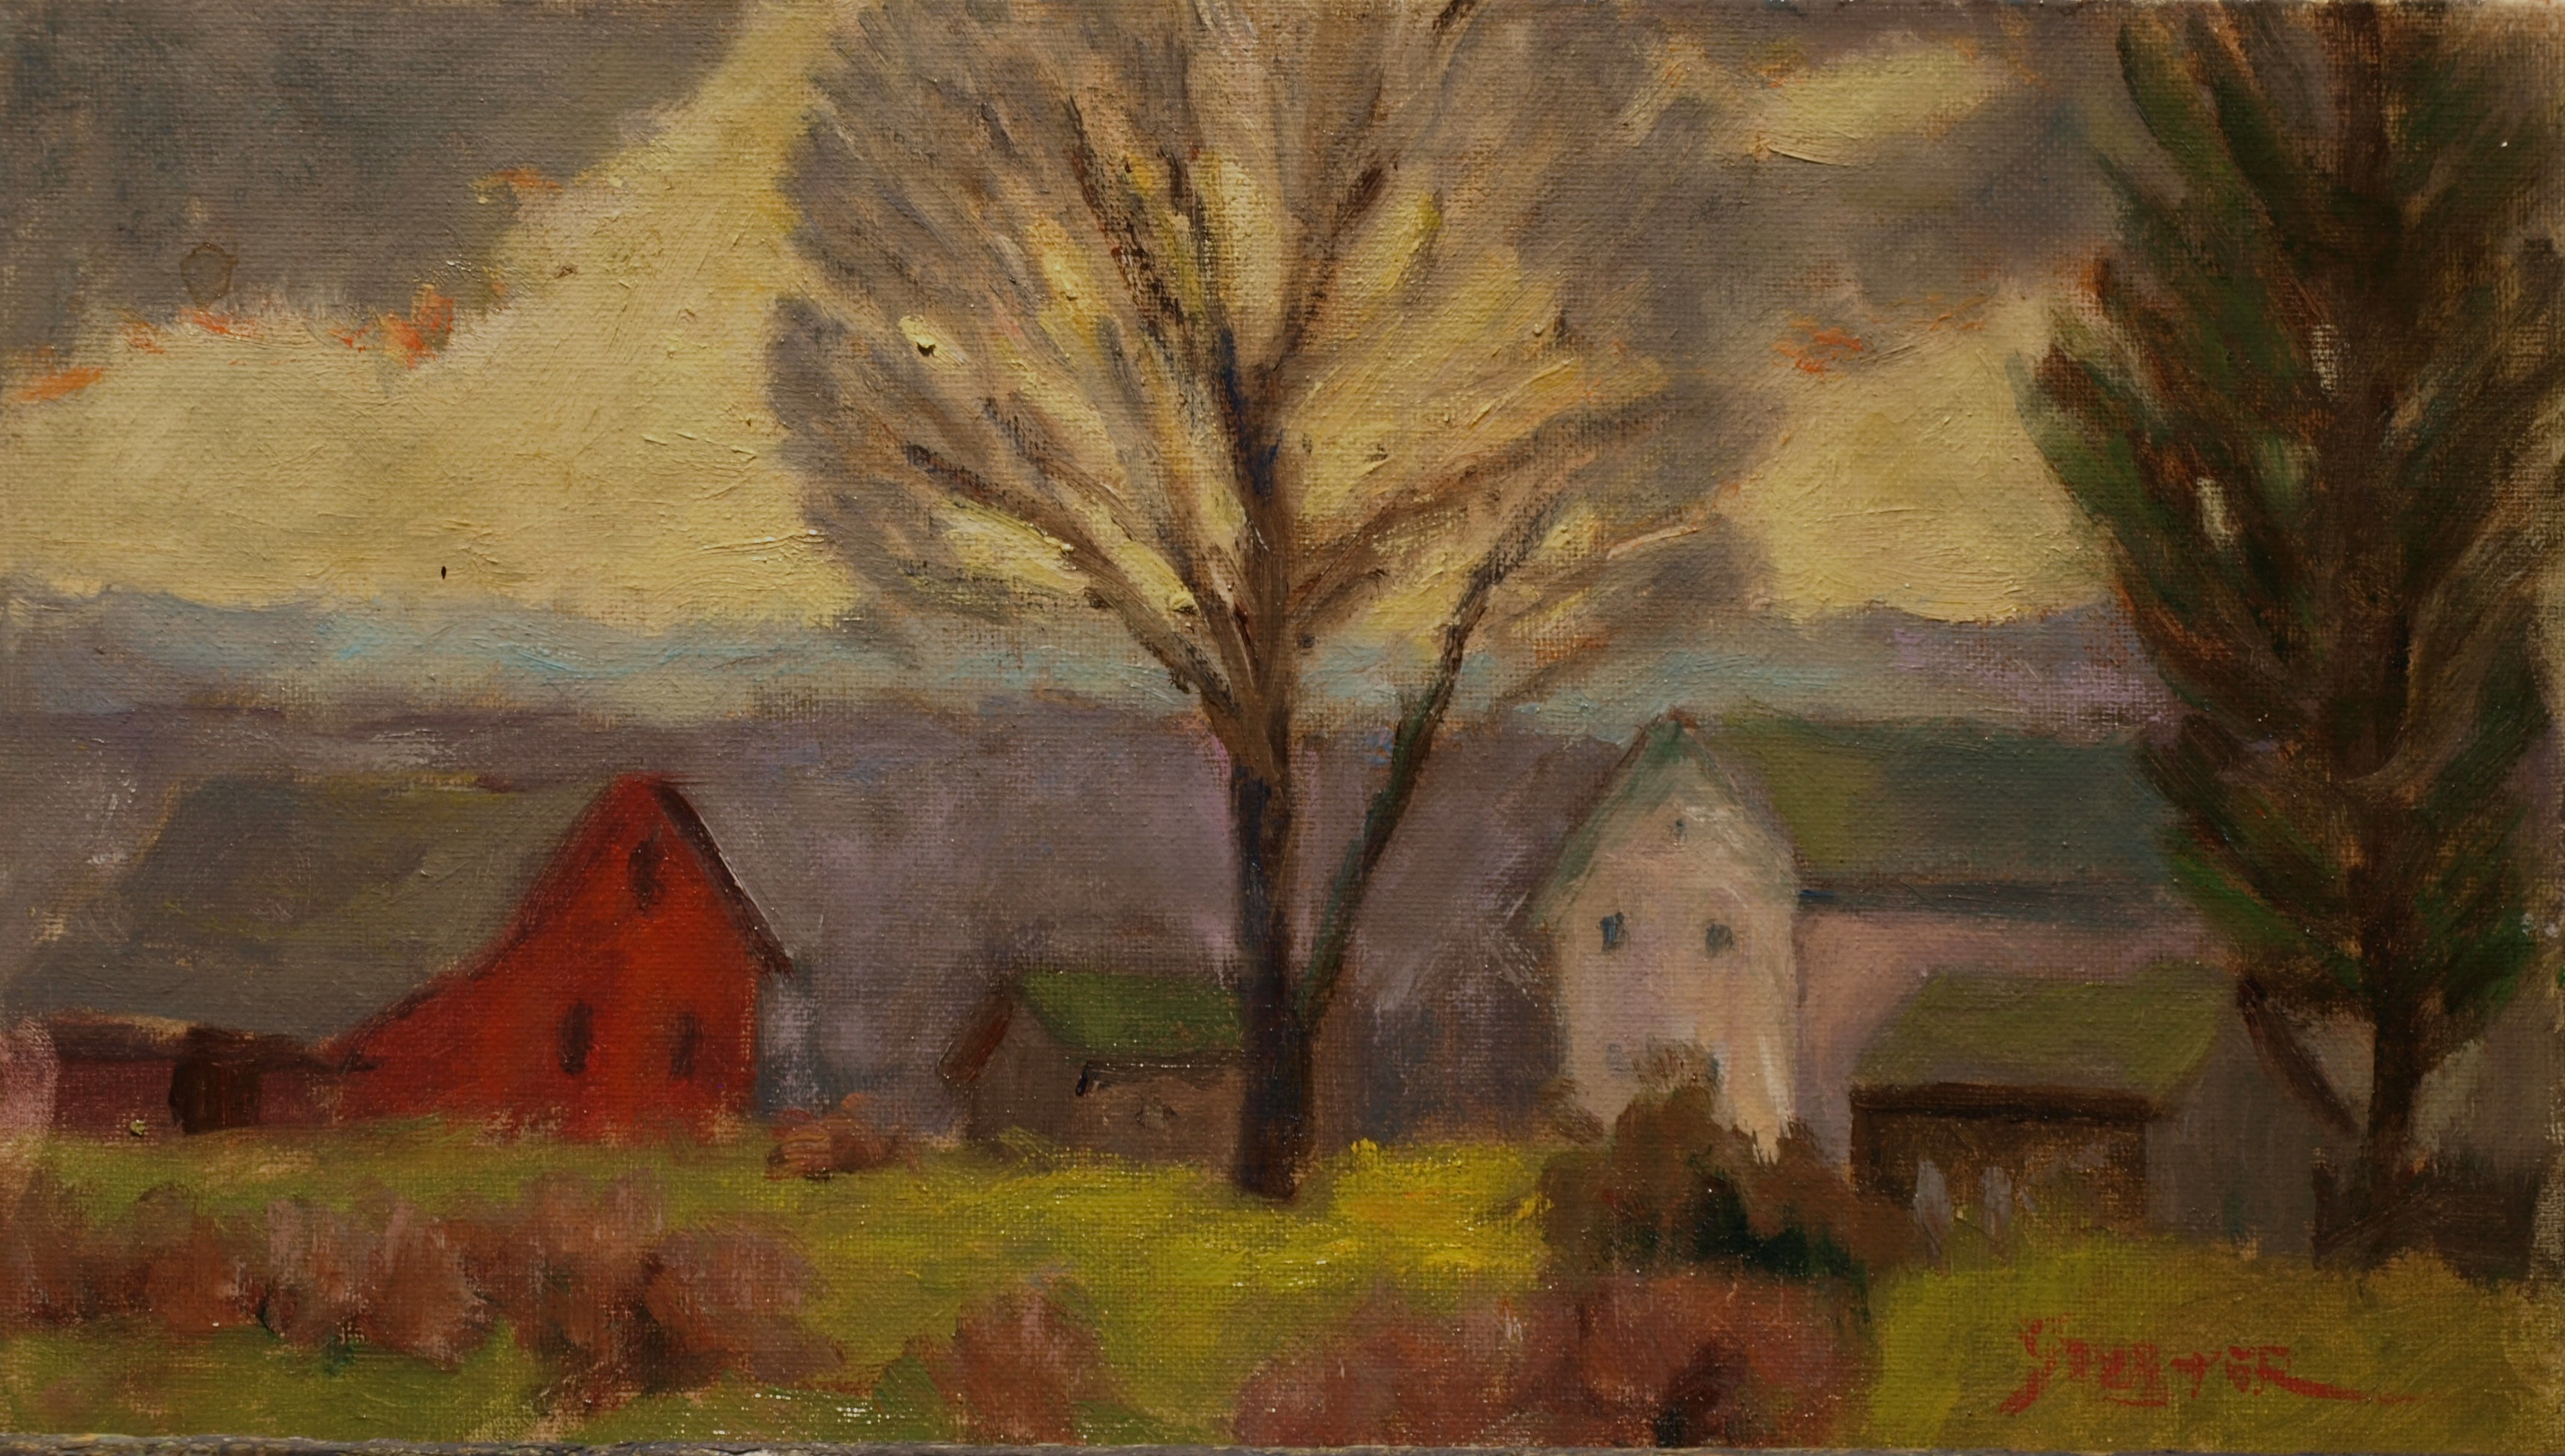 Windswept Farm, Oil on Canvas on Panel, 8 x 14 Inches, by Richard Stalter, $225